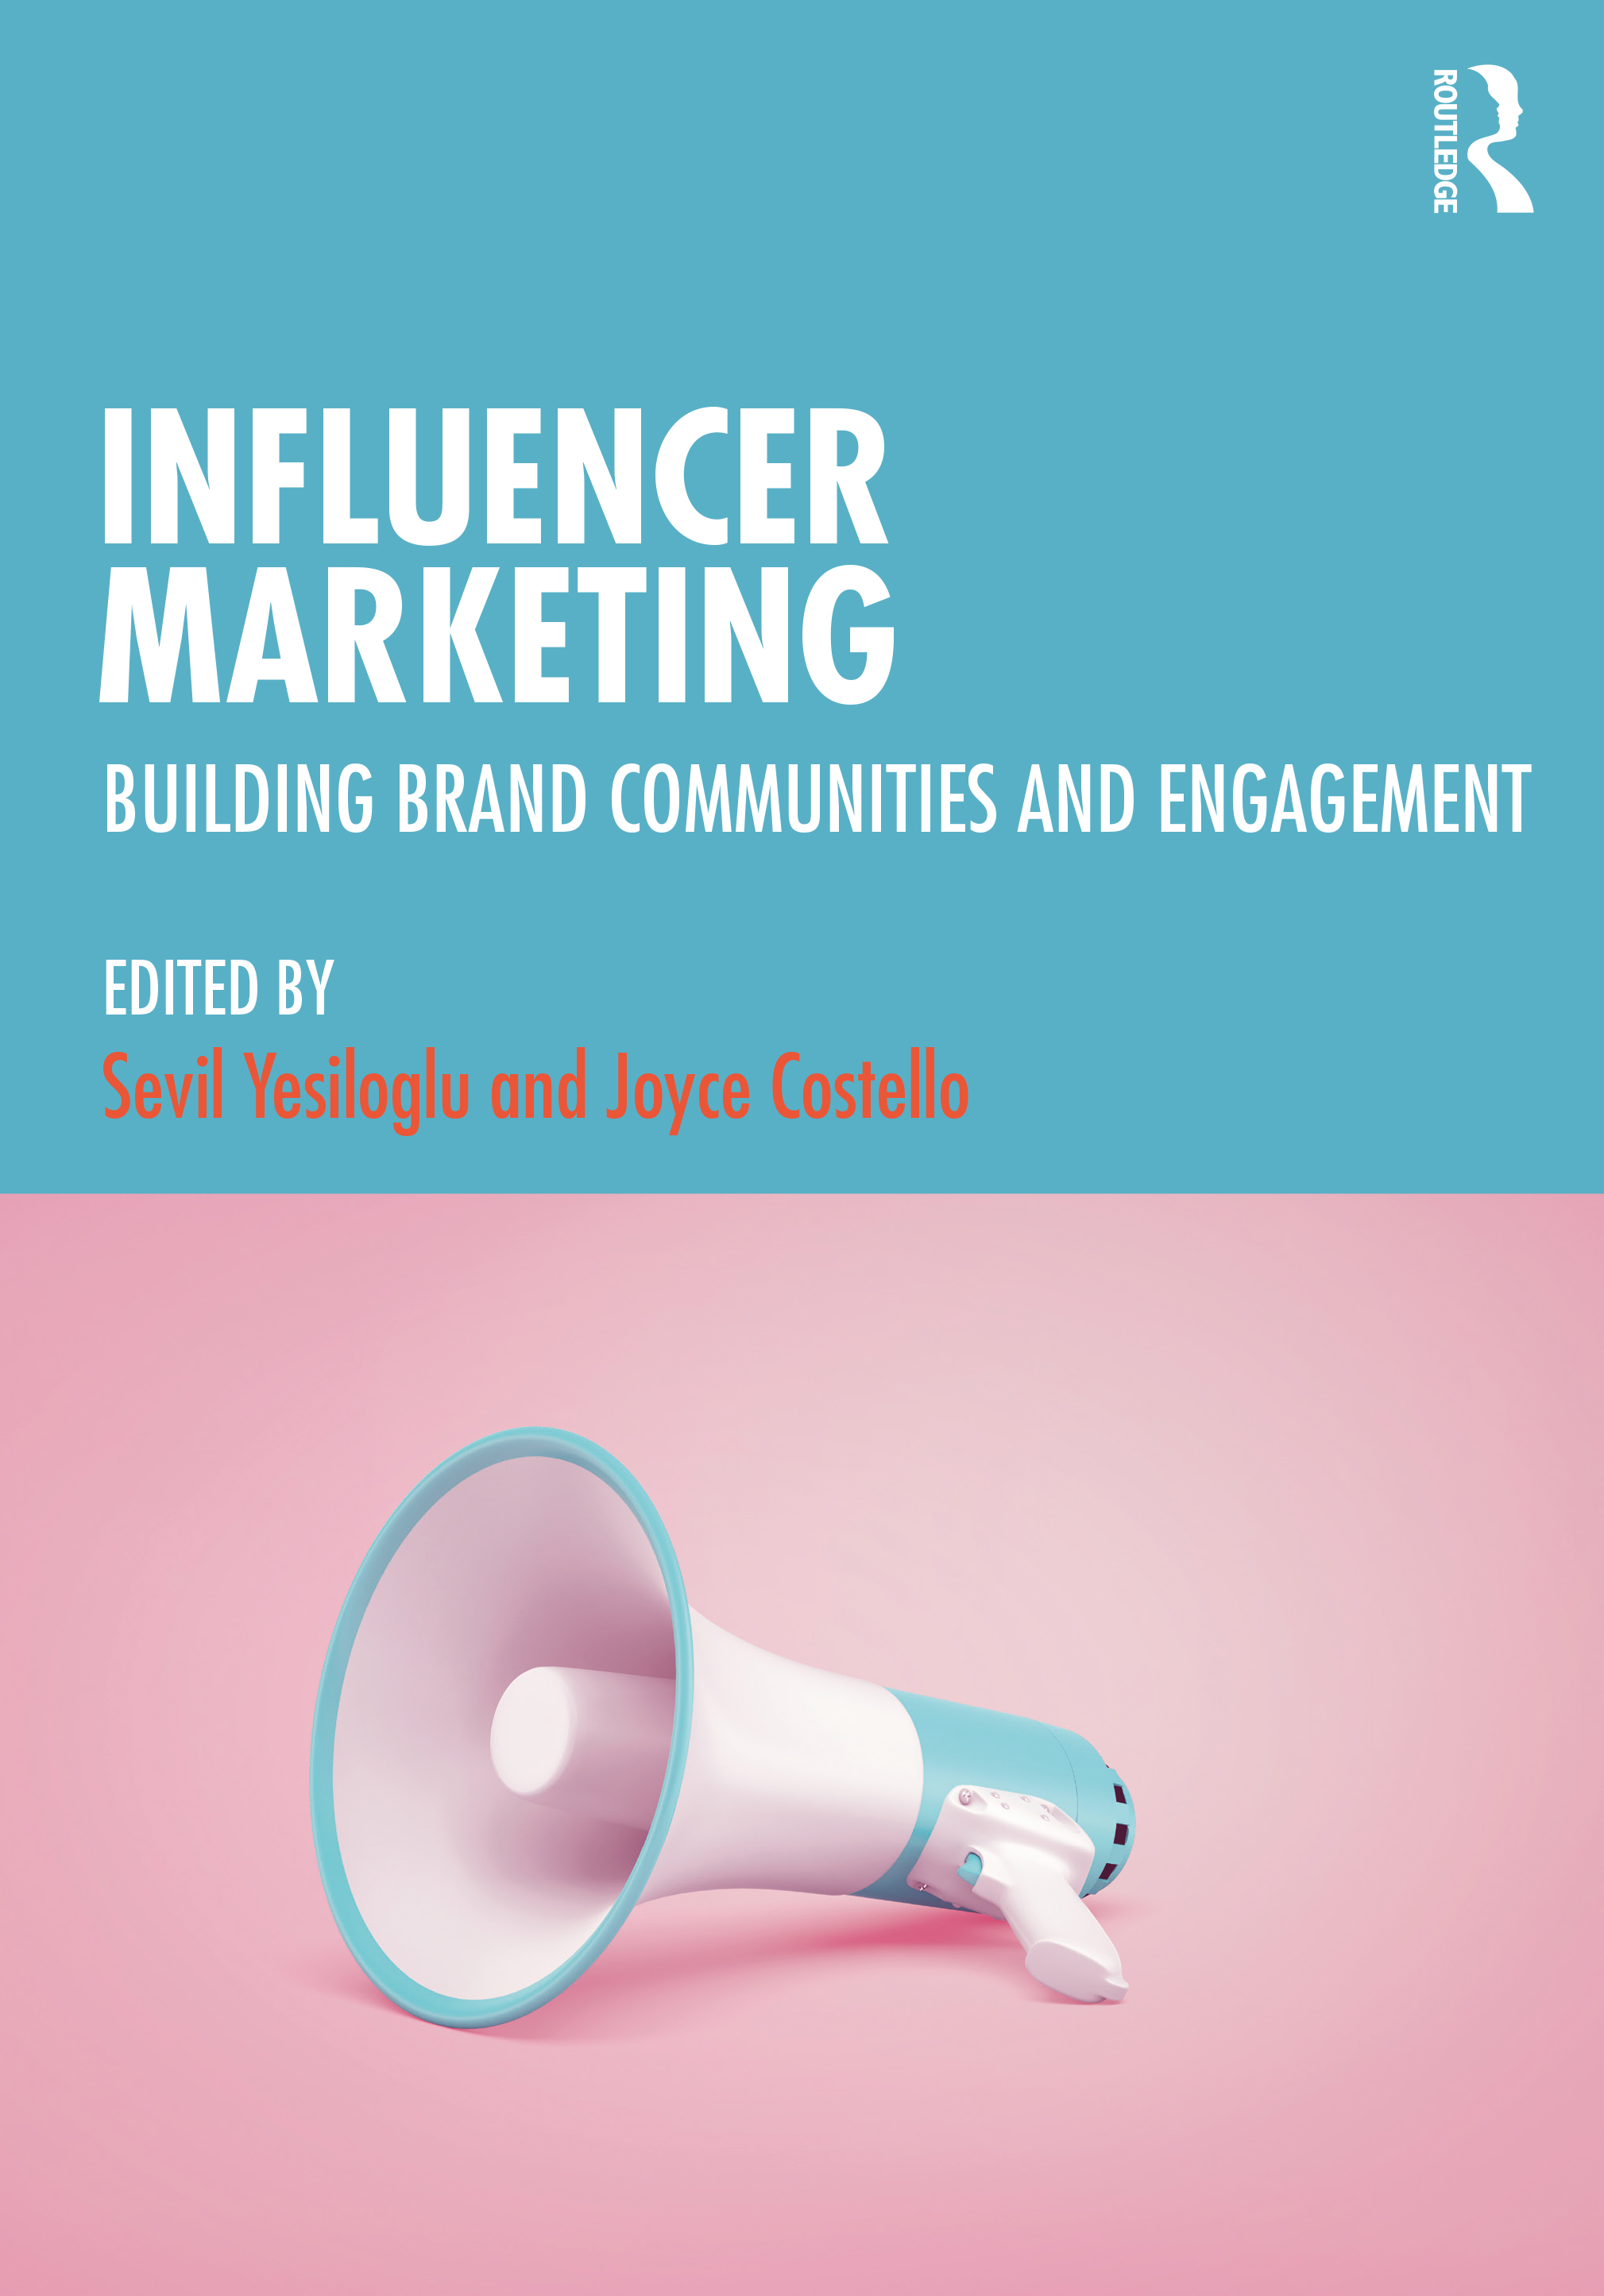 Identifying and selecting the right influencers in the digital era